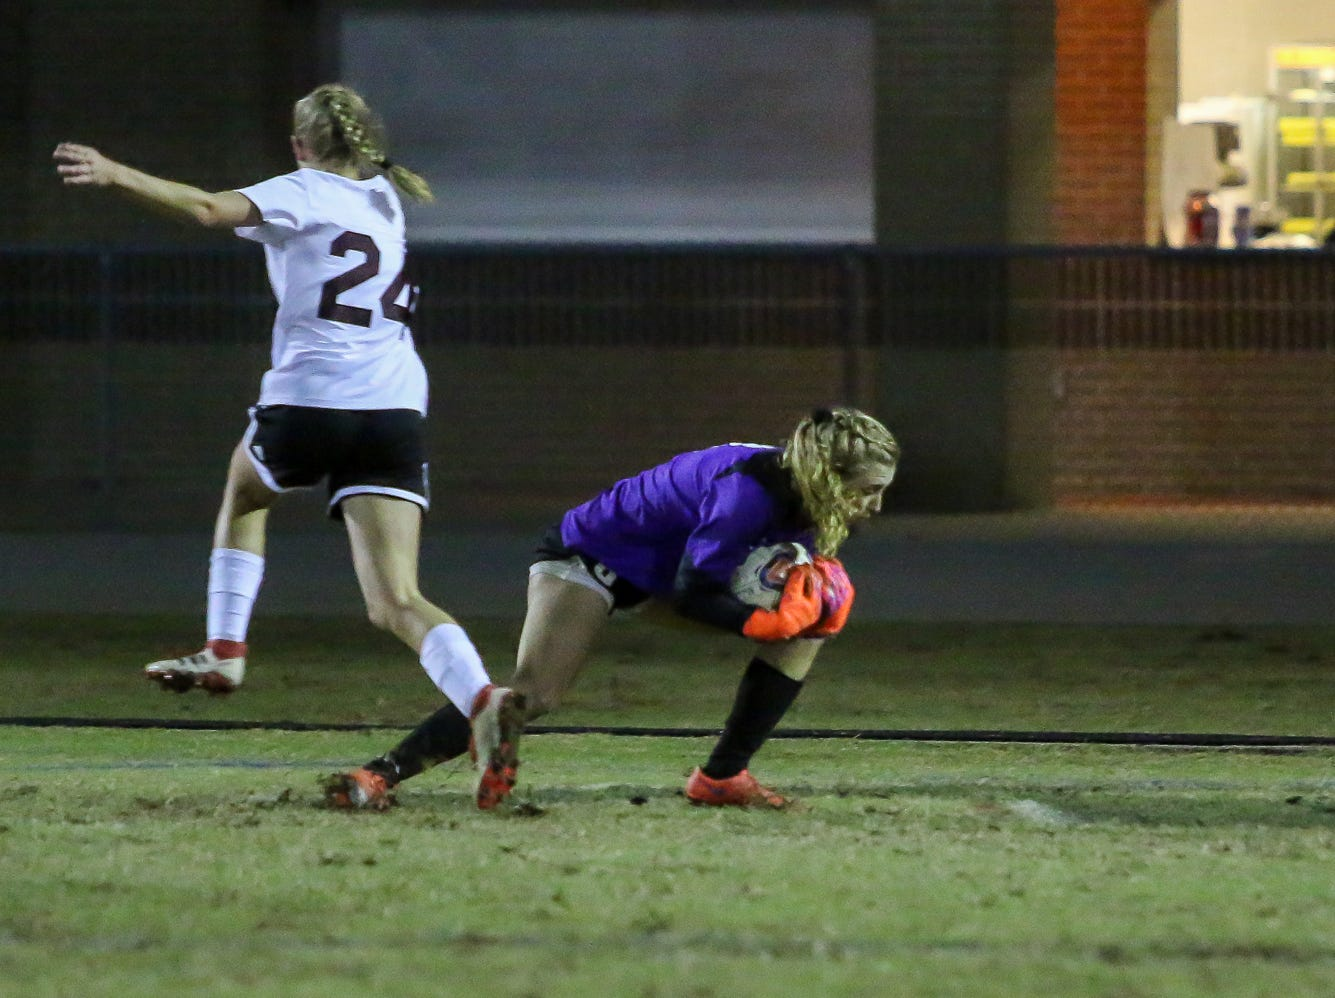 Navarre goaltender Jessika Seward (8) comes out of the goal to scoop up the loose ball  in a District 1-4A showdown of unbeaten teams against Niceville at Navarre High School on Tuesday, December 4, 2018. The game ended in a 1-1 tie.